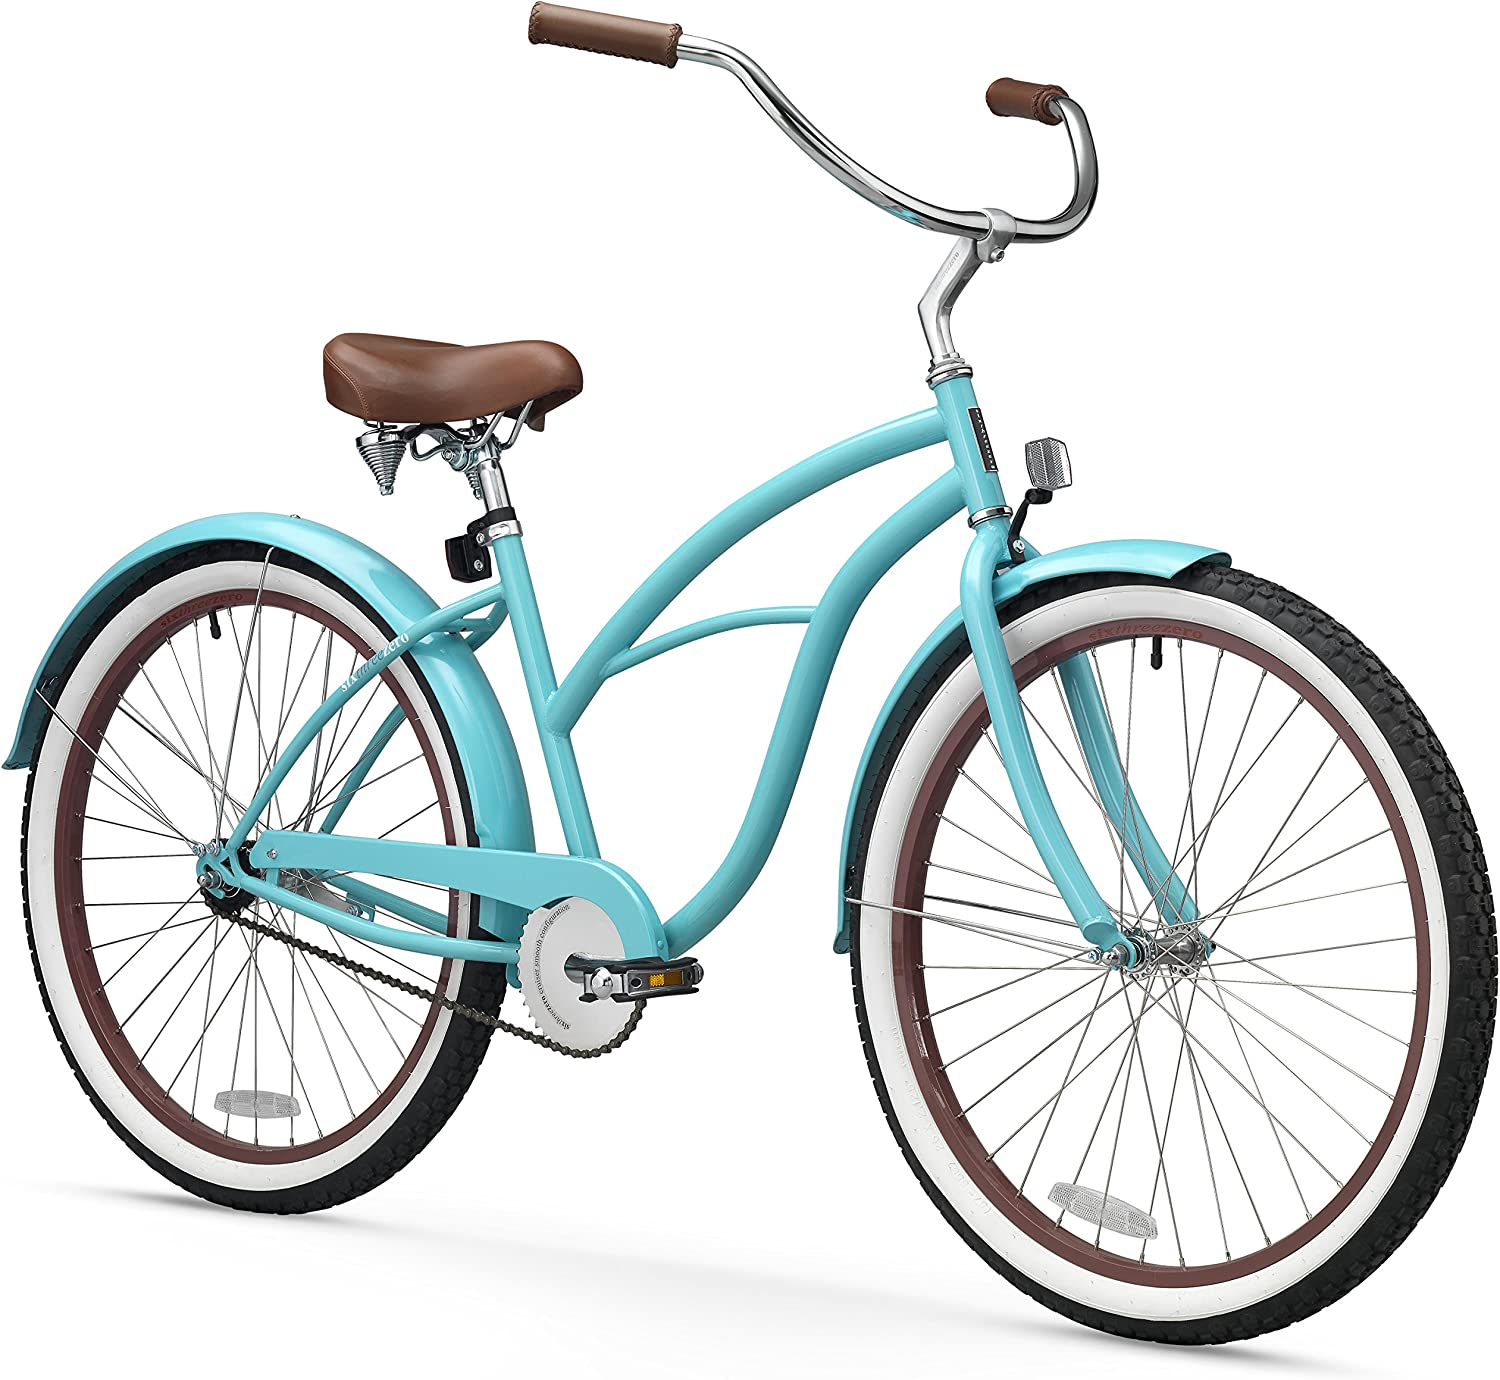 sixthreezero Women s Beach Cruiser Bicycle, 26 Wheels 17 Frame